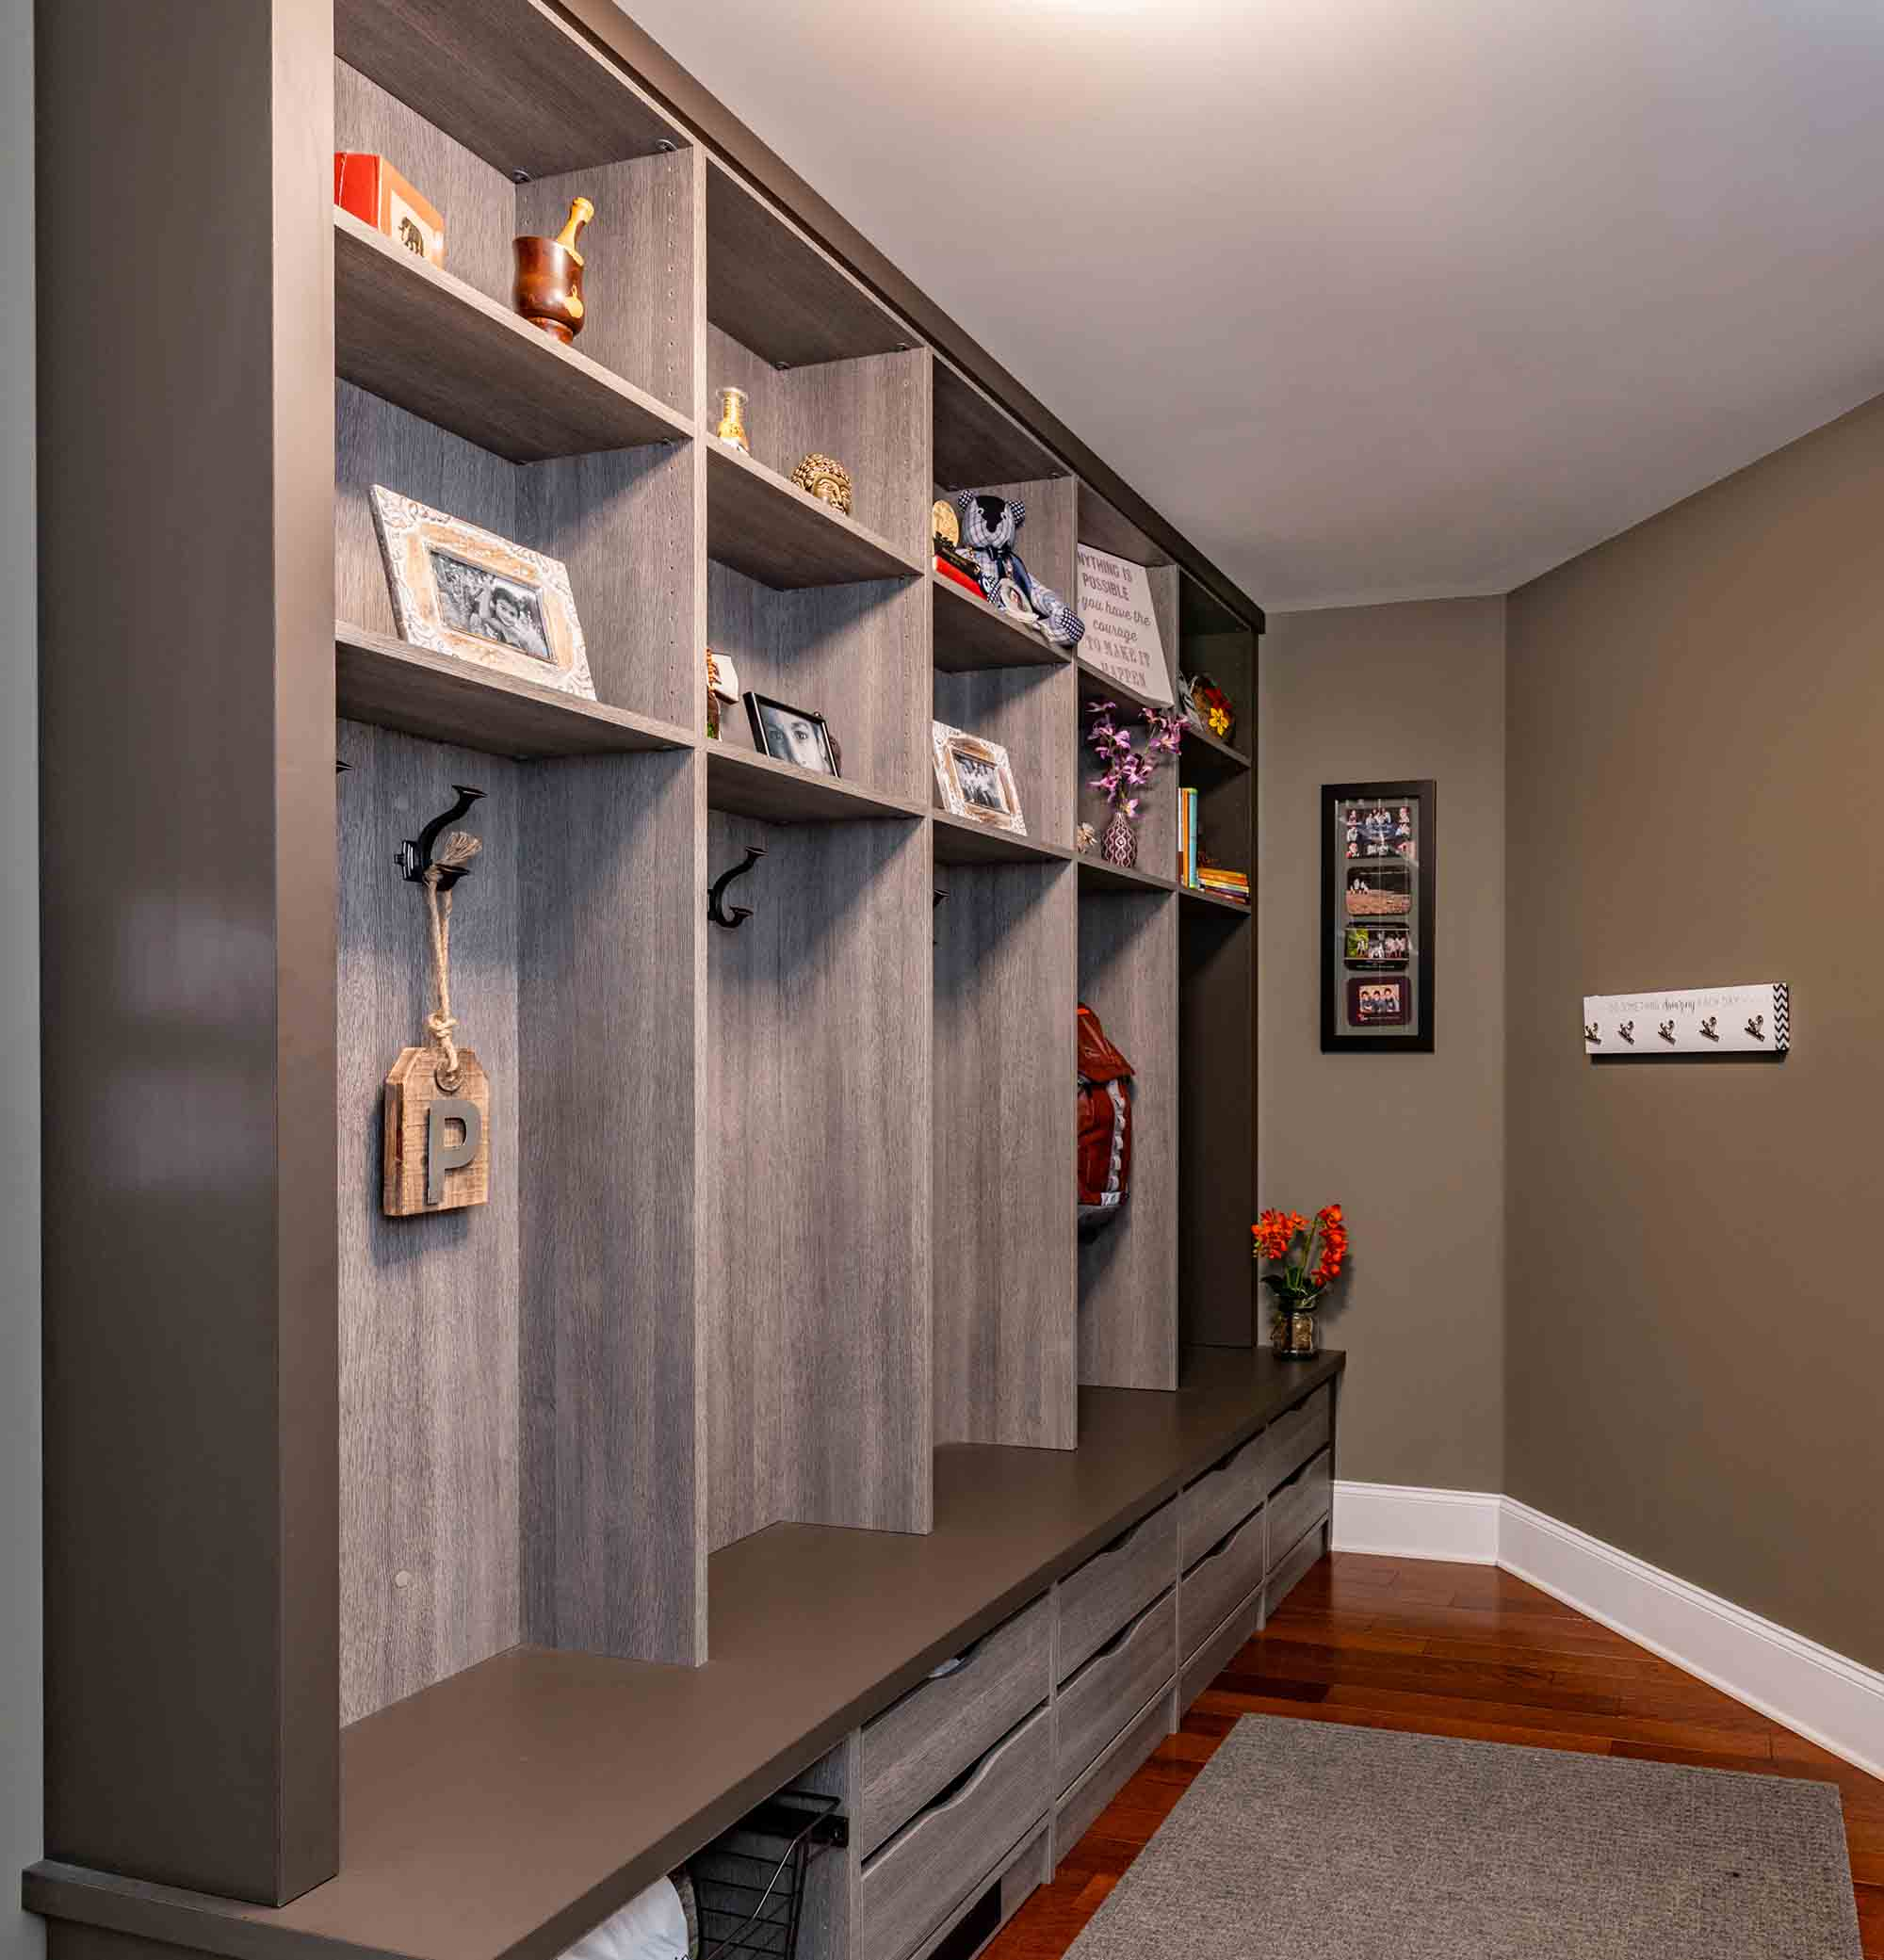 The Value of Having an Efficient Mudroom